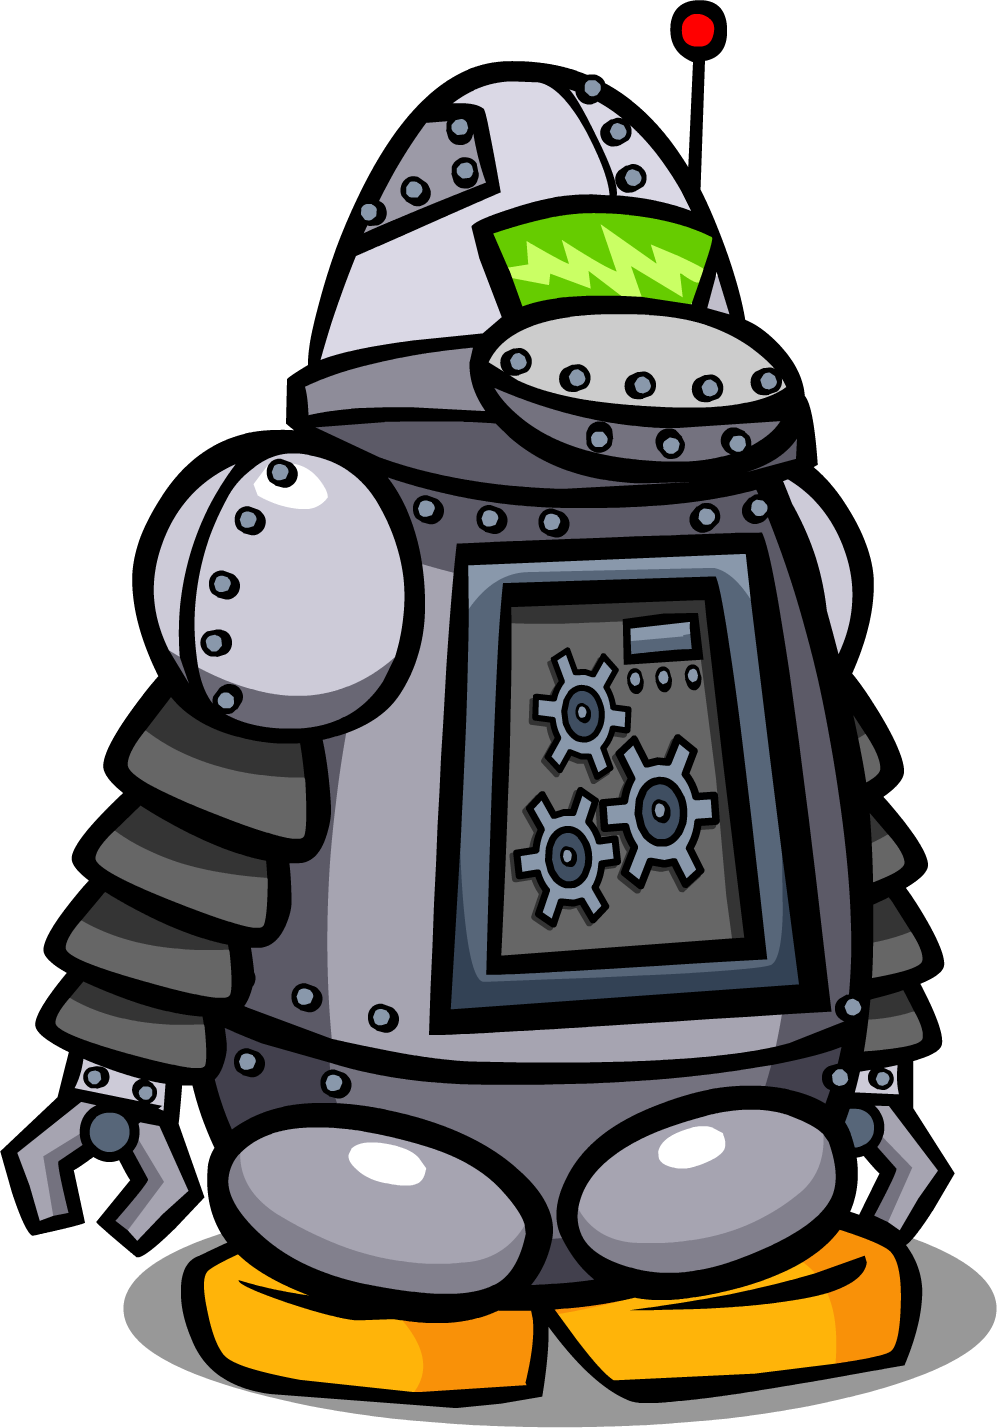 Image result for robot costume club penguin